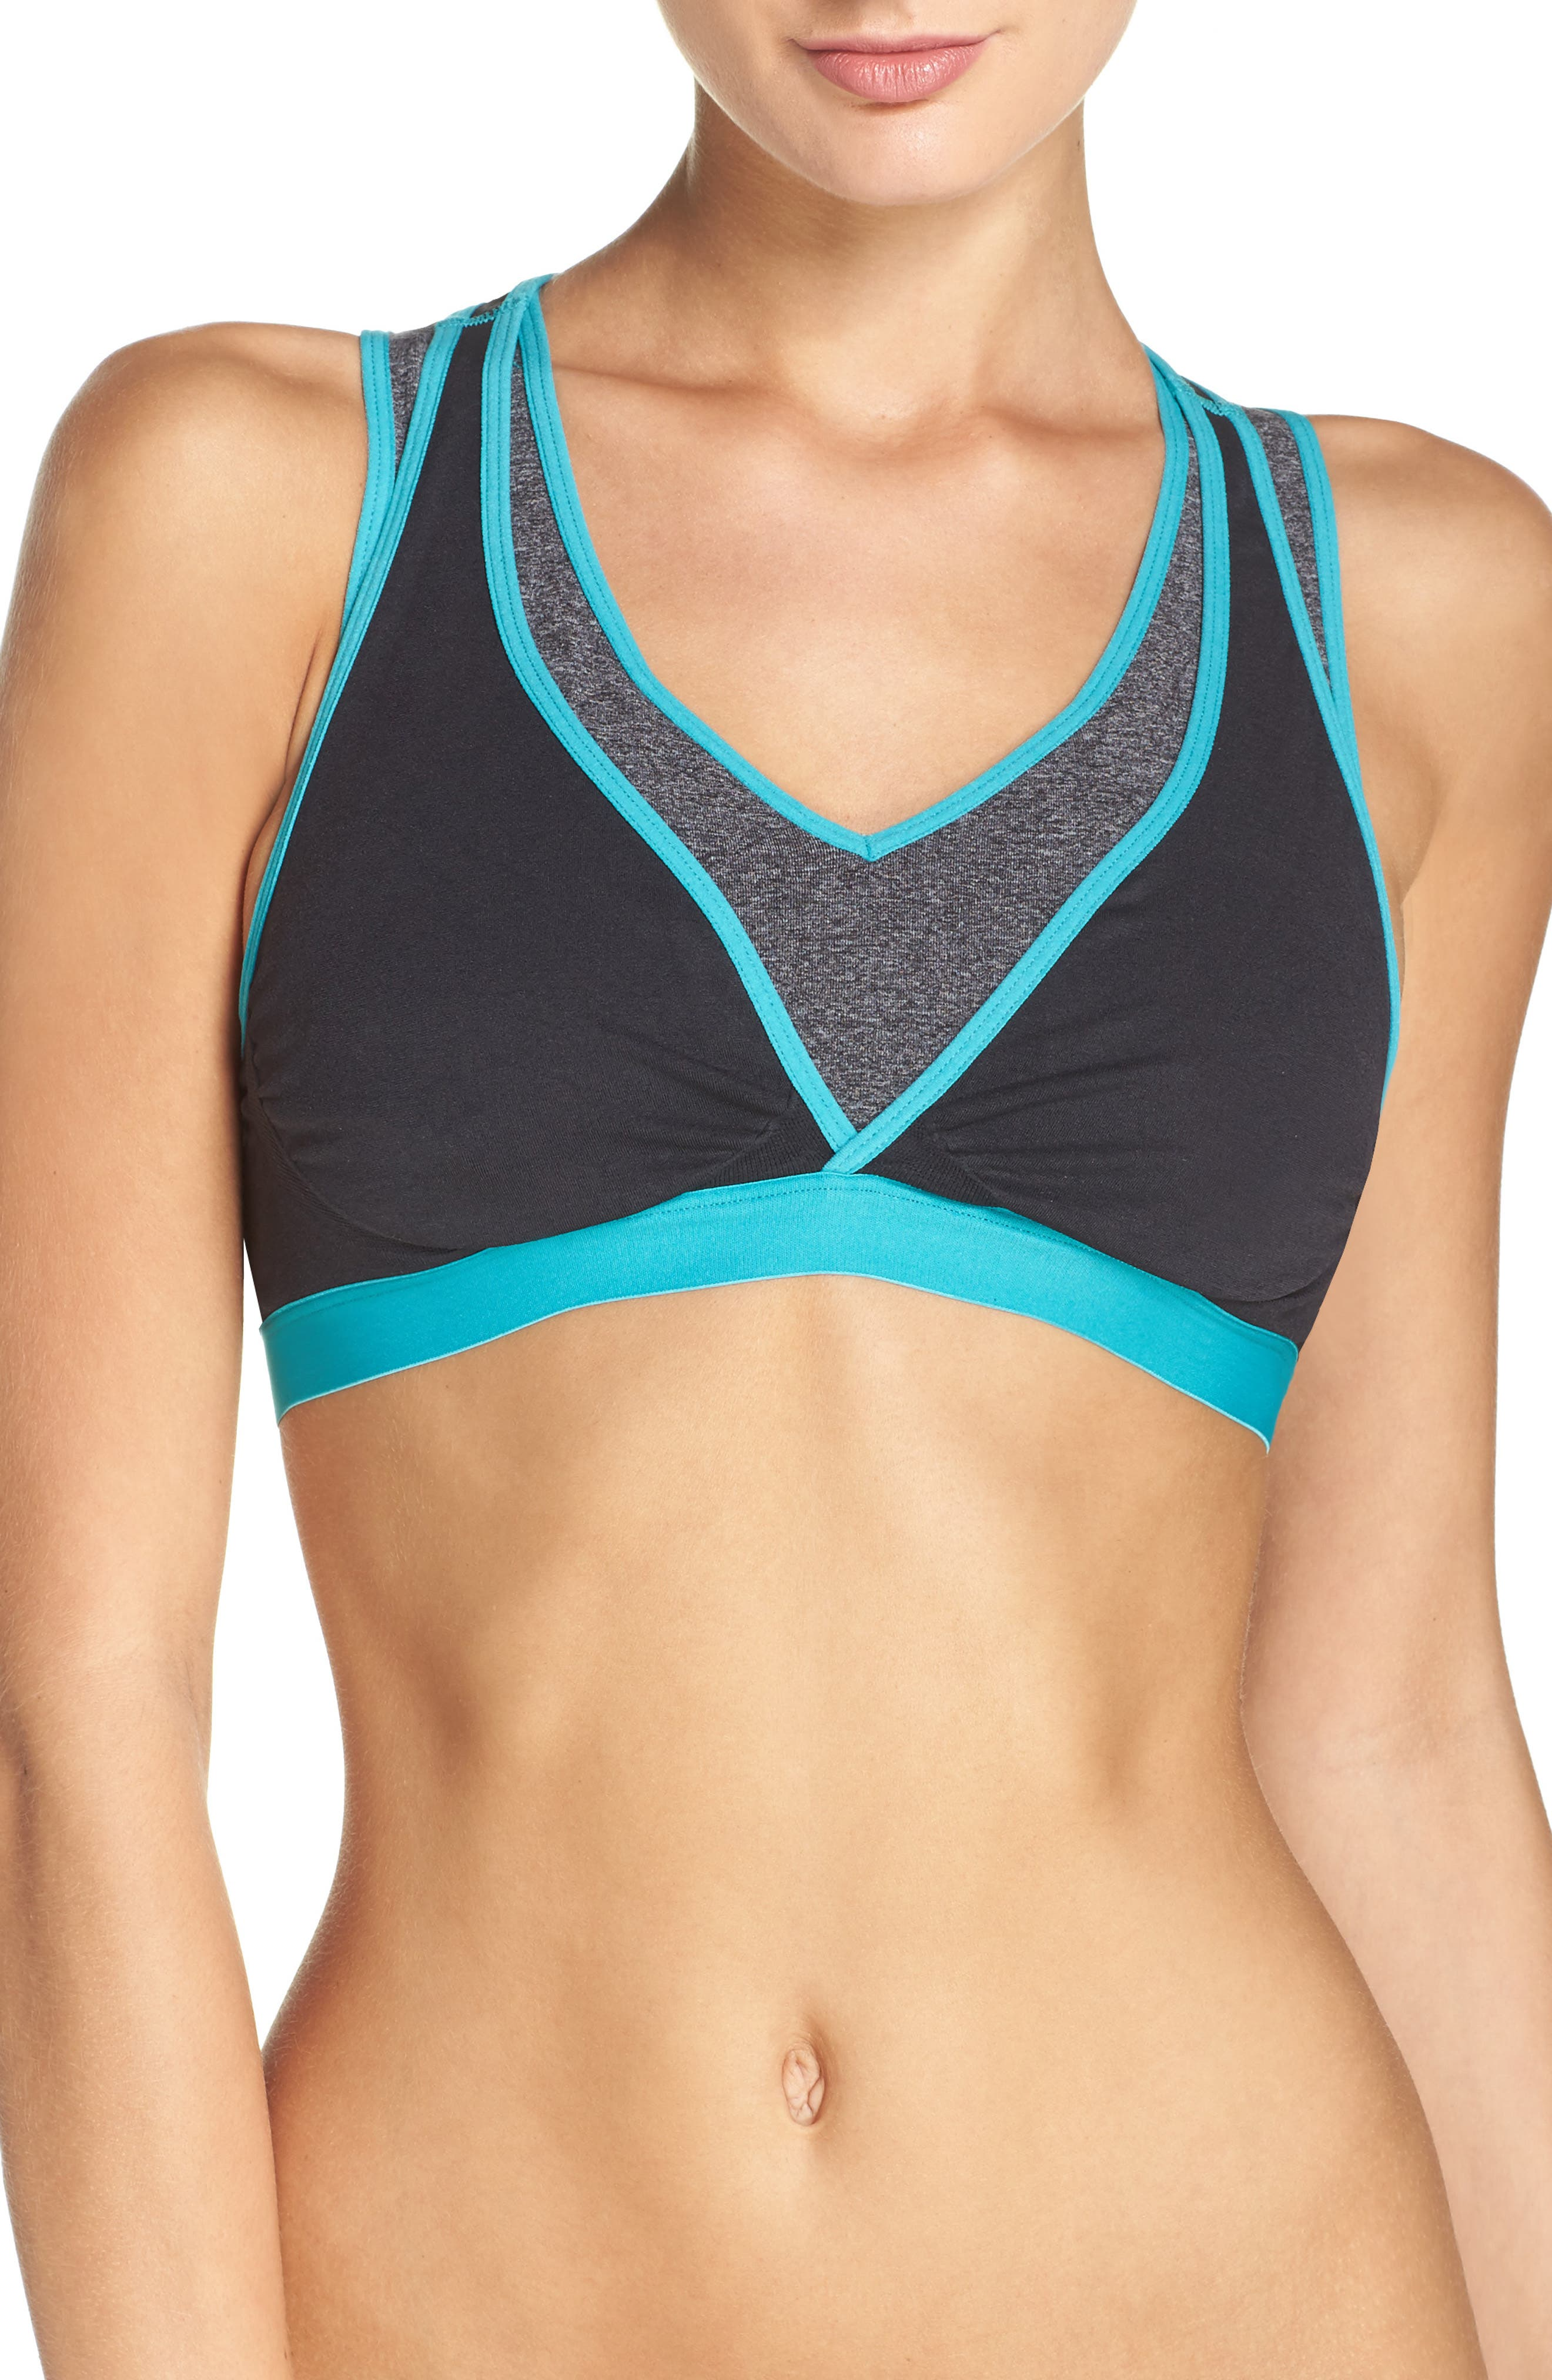 CAKE Lotus Nursing Sports Bra